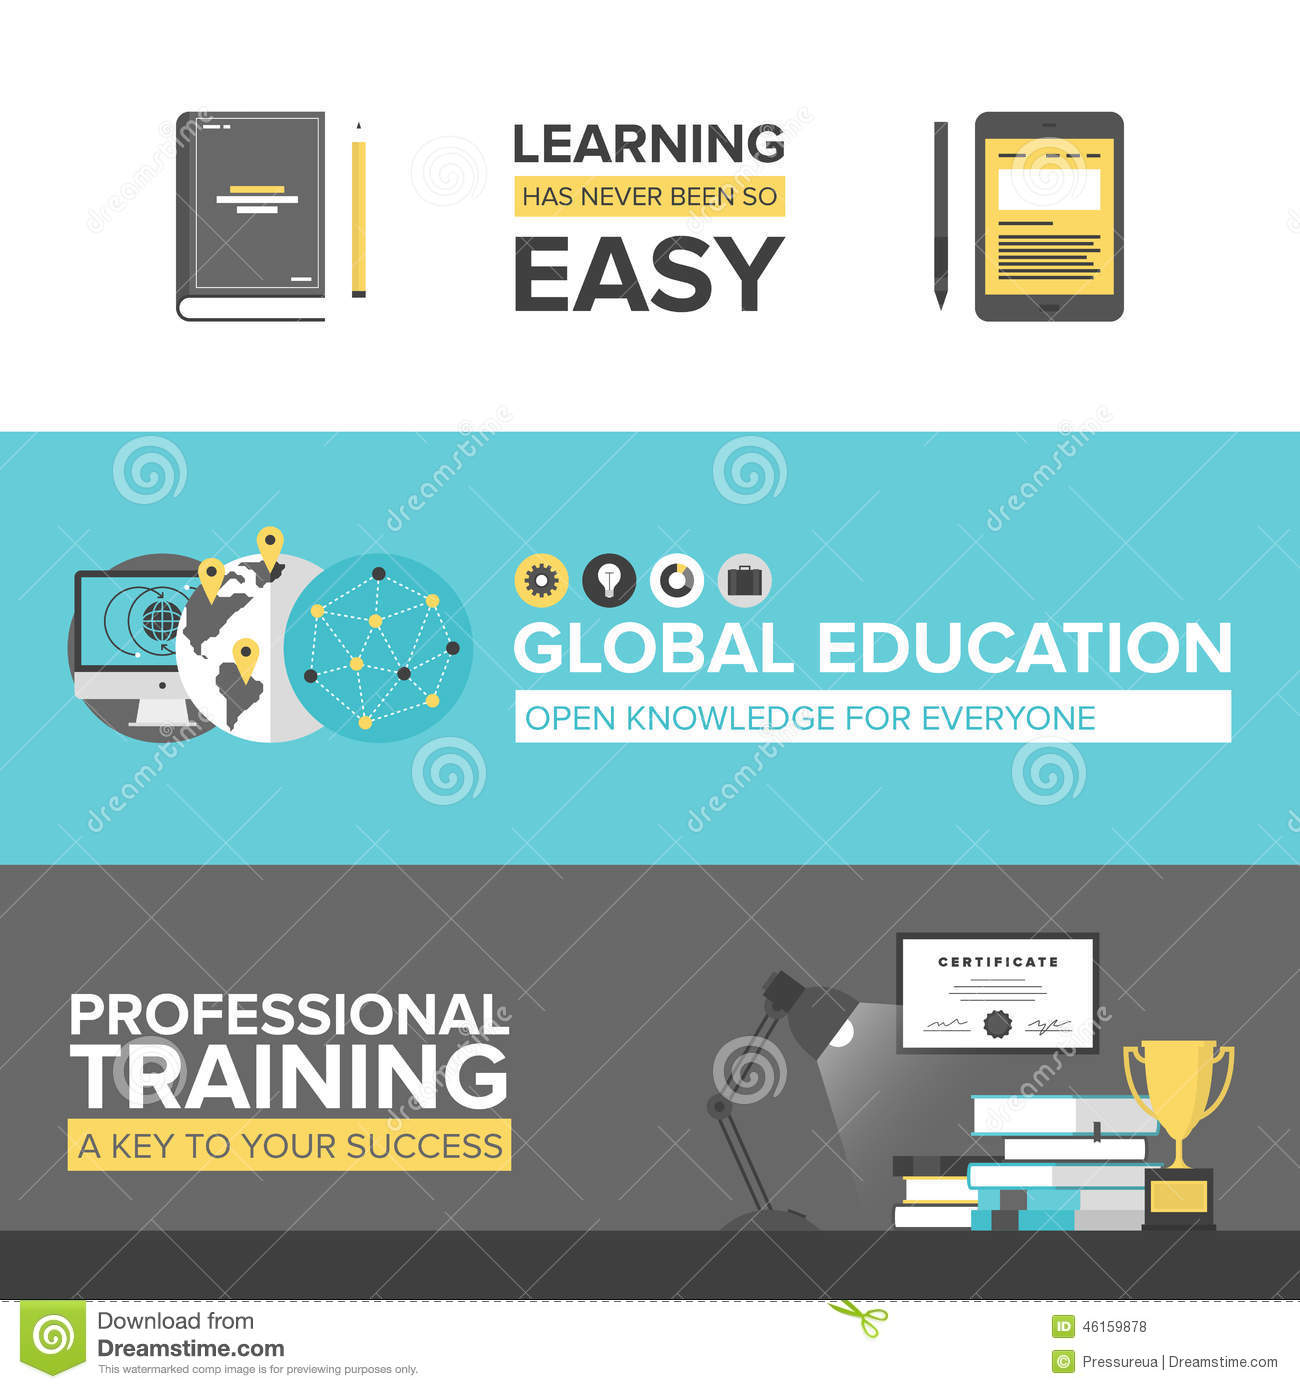 Global Education Flat Design Banners Stock Vector - Image: 46159878